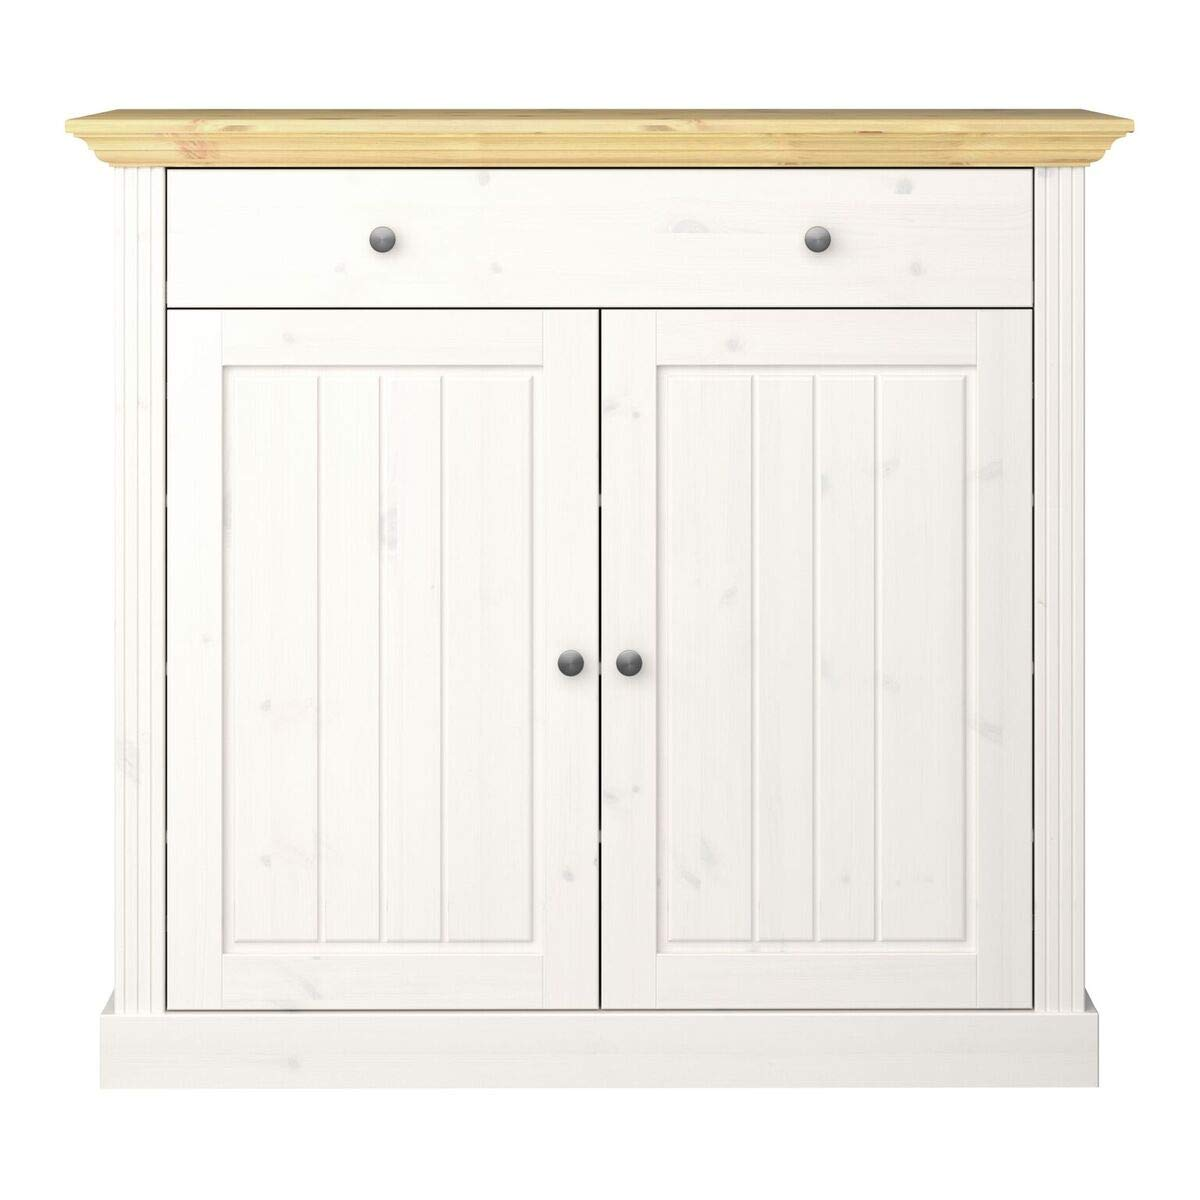 Steens Group Armoire à Chaussures Groupe Monaco pin Massif Blanc 120x110x40 cm, Weiss